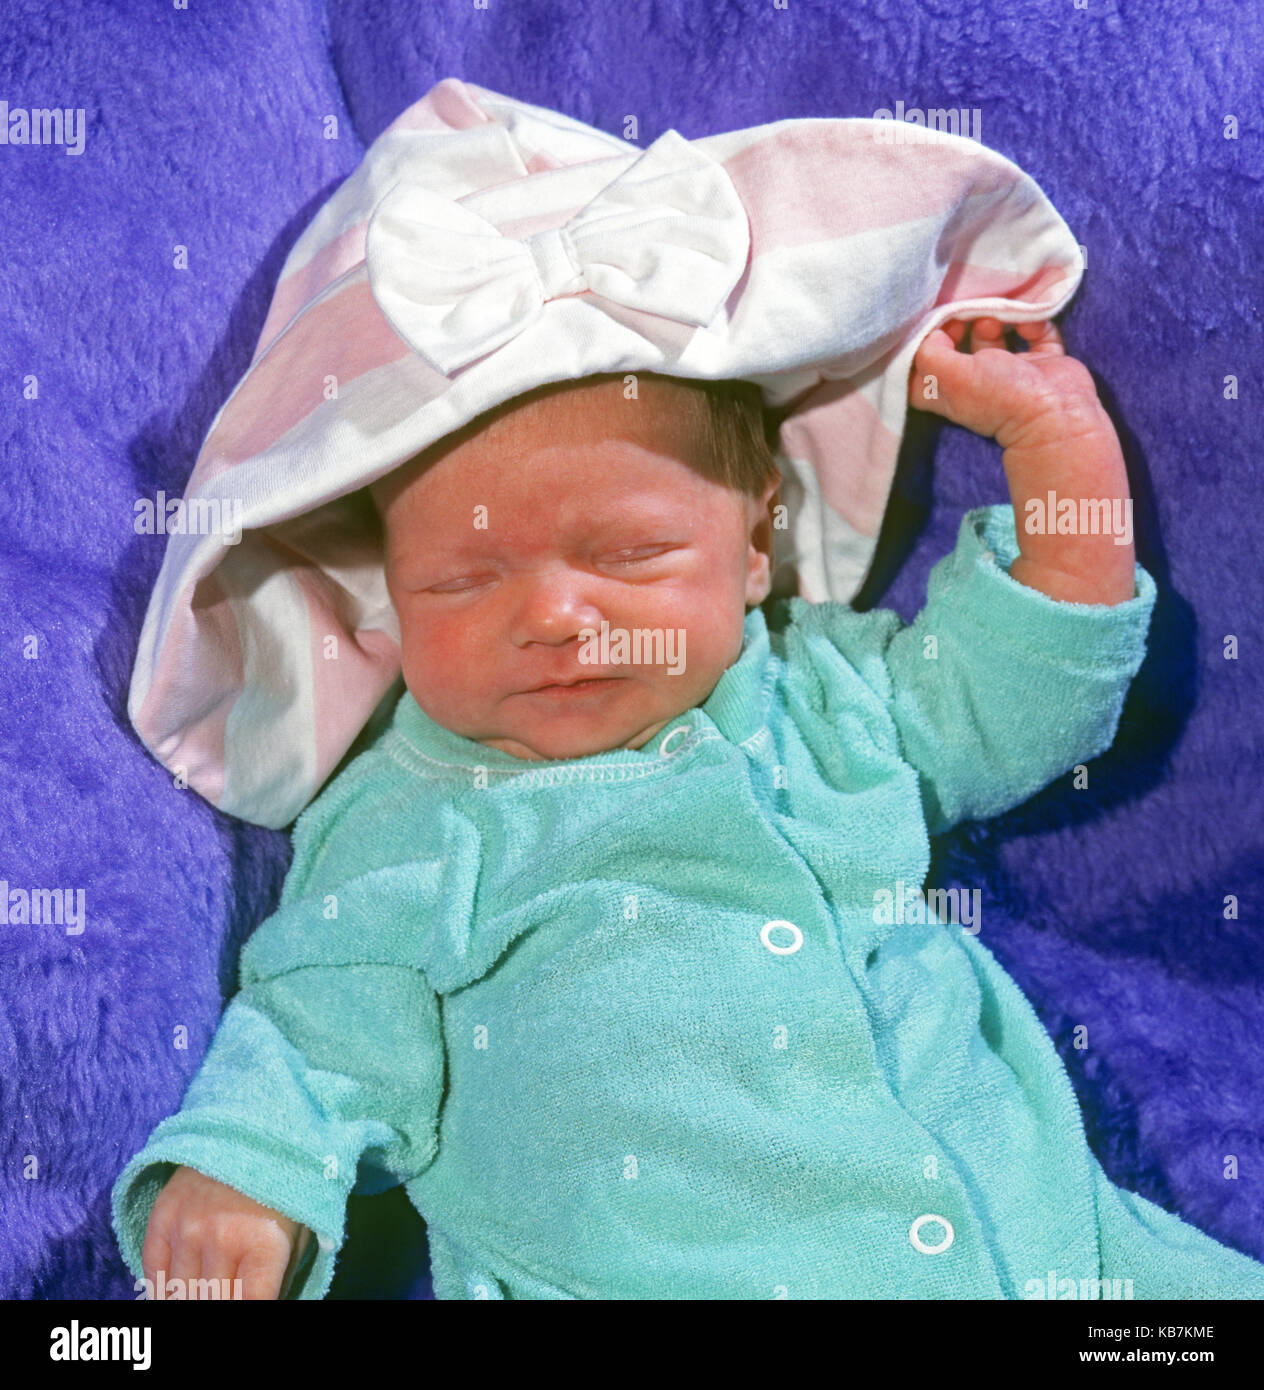 A two-week old baby wearing a onesie and a bonnet taking a nap in a blue  blanket. c6dd0fb78e0